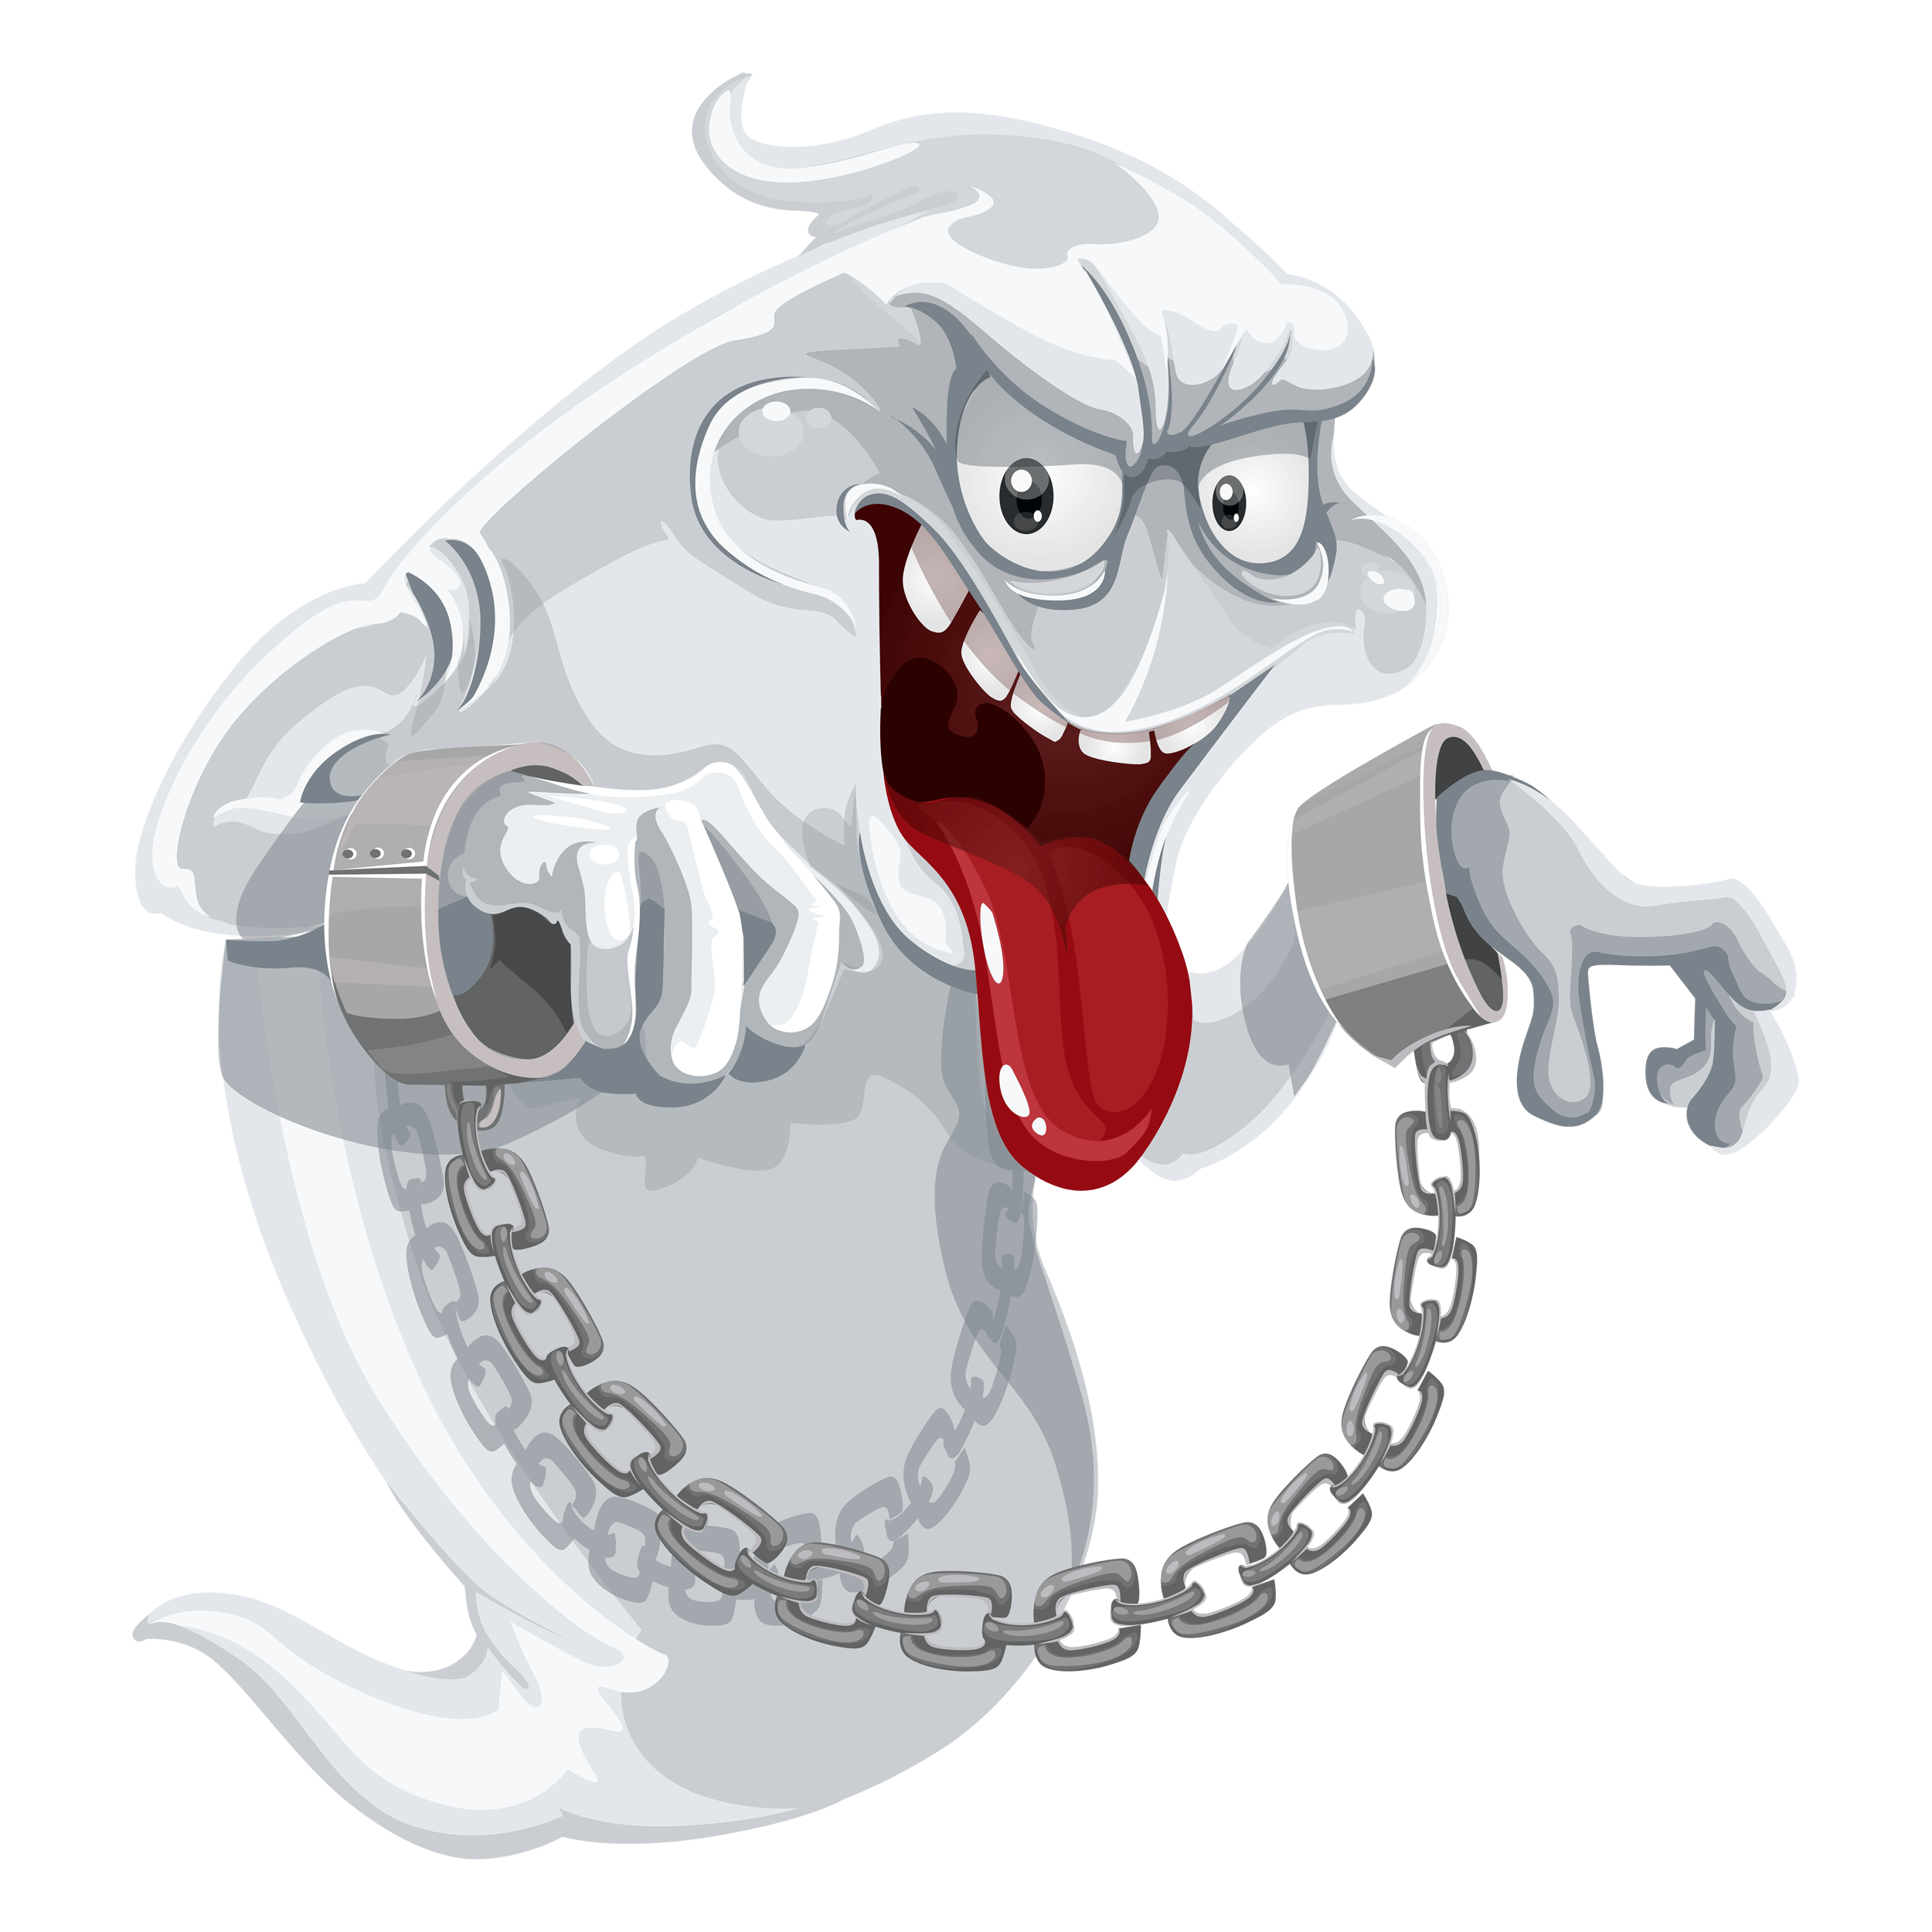 Evil Ghosts with Chains Transparent Image